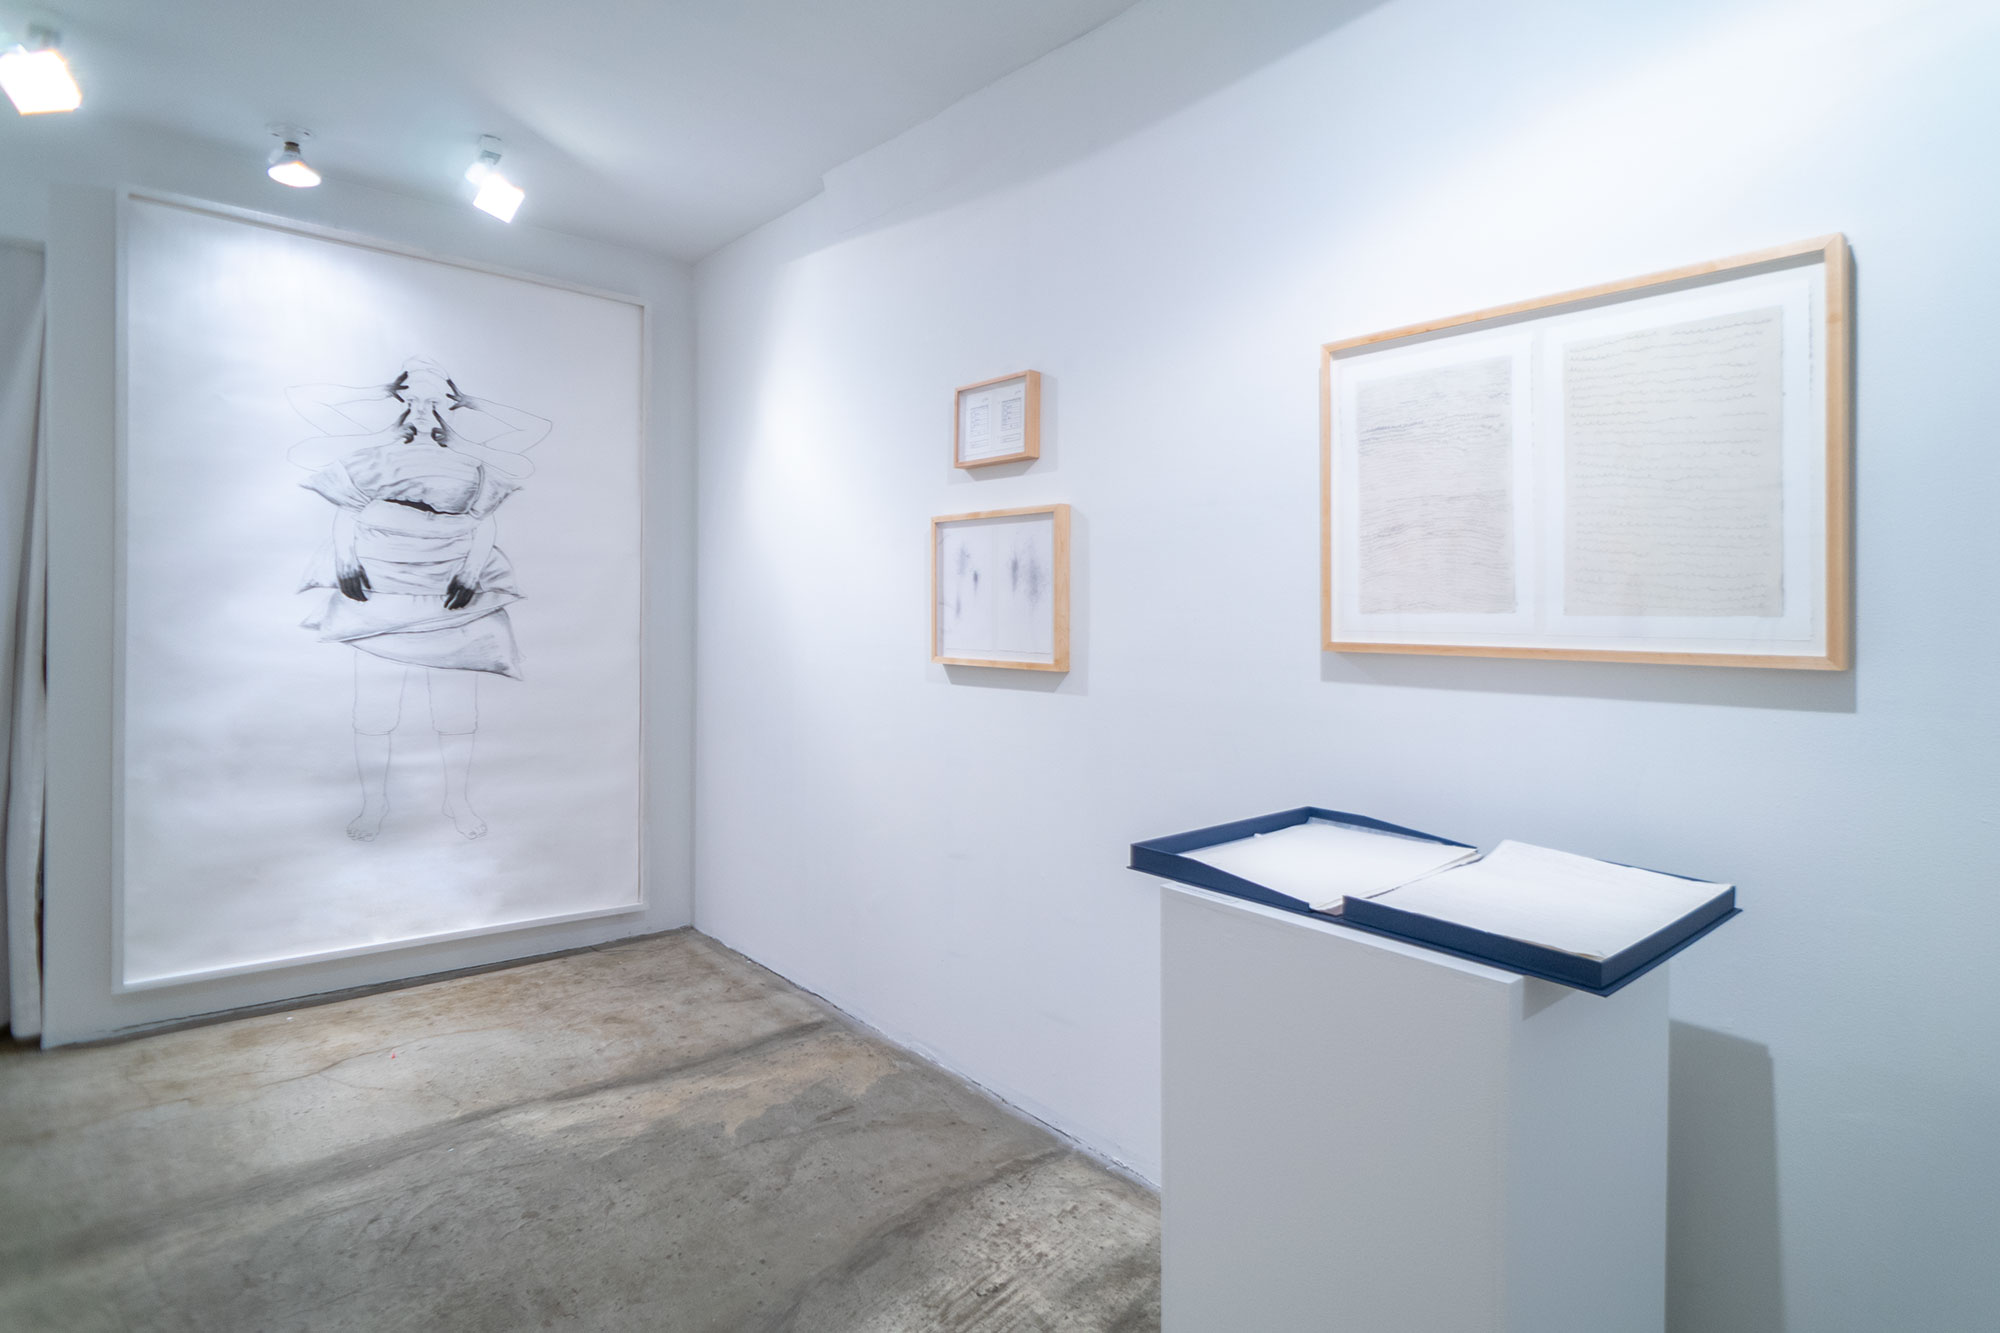 Installation view: The End & The Beginning; Alice Gibney and Sarah Irvin